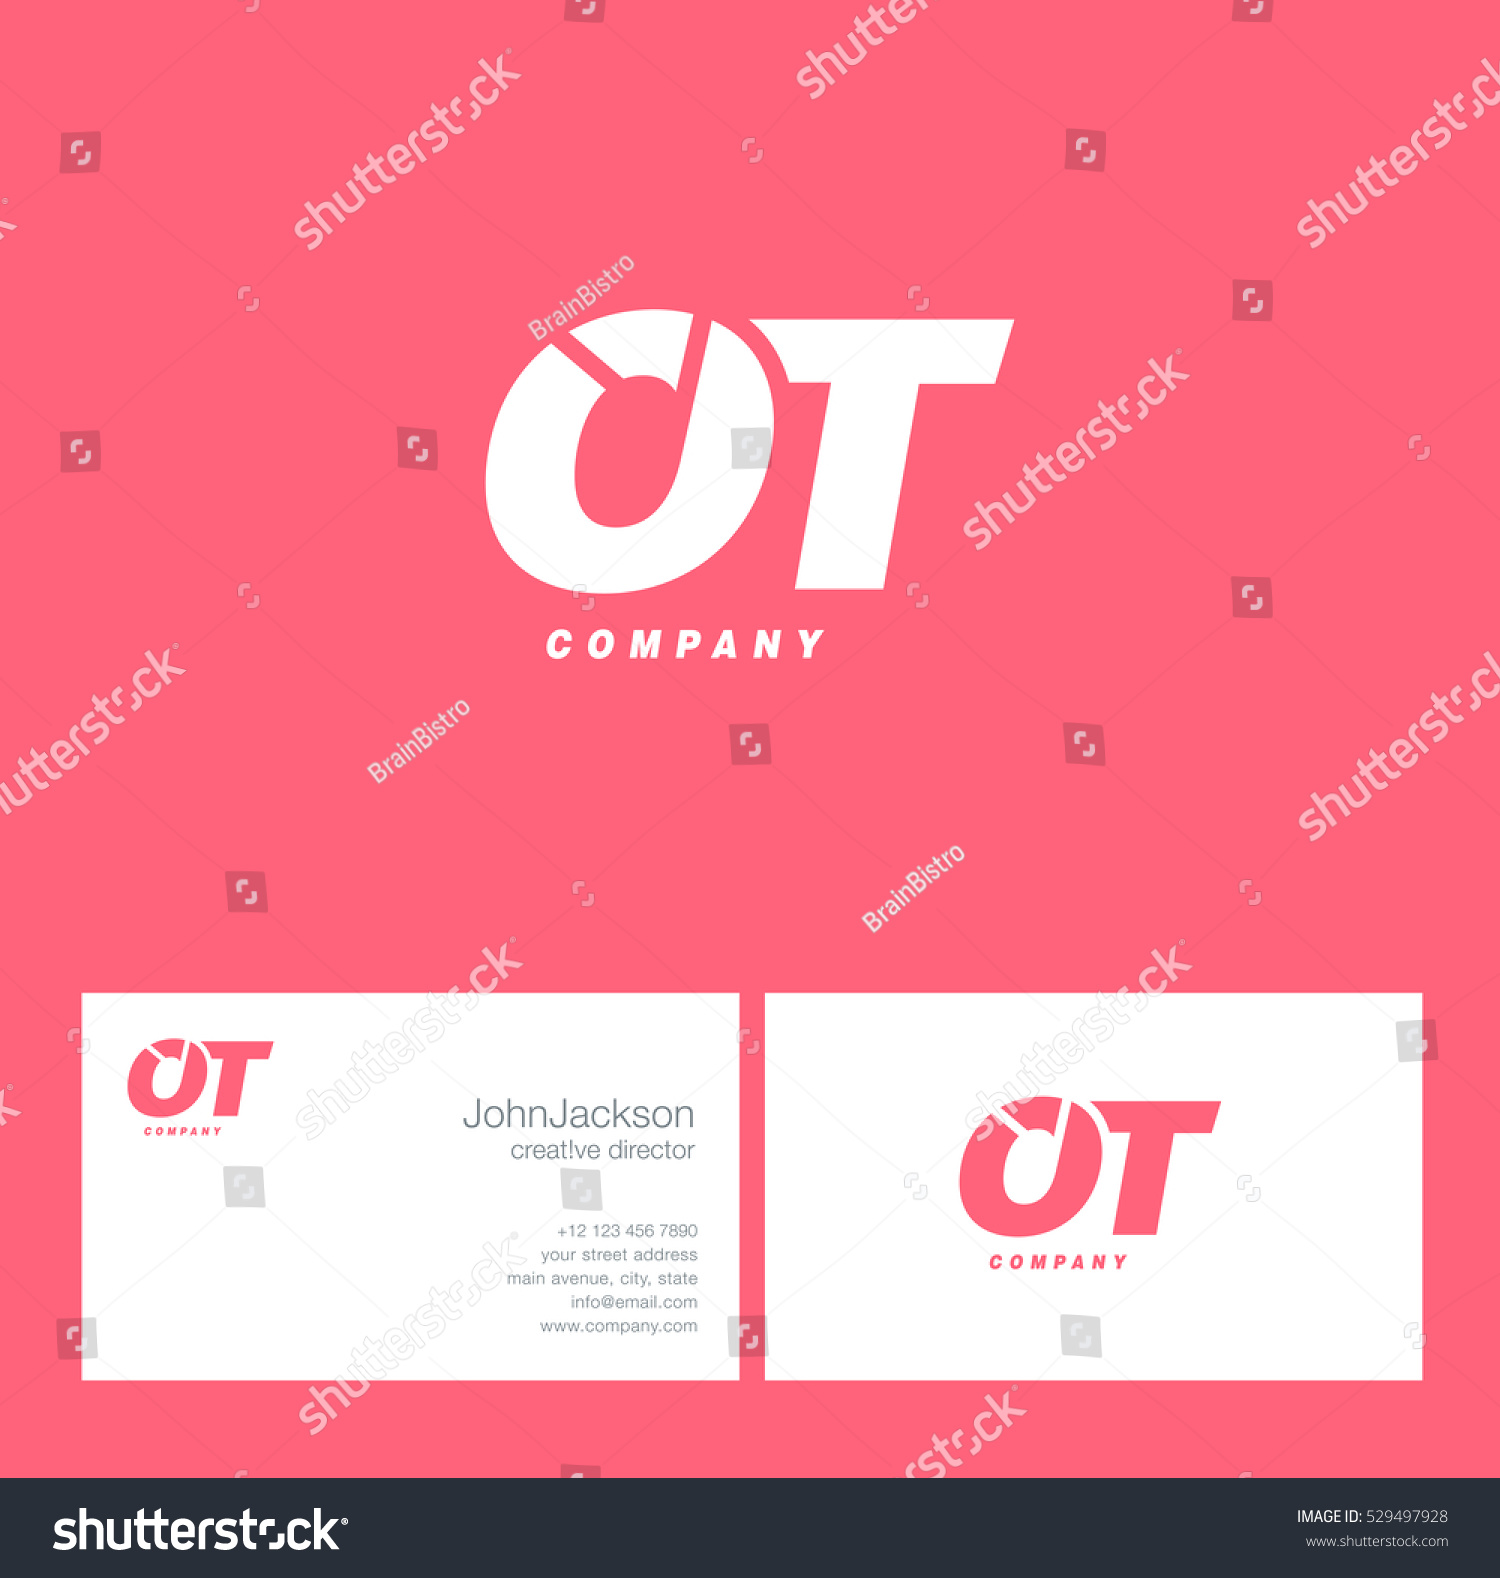 Amazing 1 Inch Hexagon Template Huge 1 Page Resumes Examples Clean 1.25 Button Template 10 Best Resumes Young 10 Tips To Making A Resume Bright100 Dollar Bill Template O T Letters Logo Business Card Stock Vector 529497928   Shutterstock